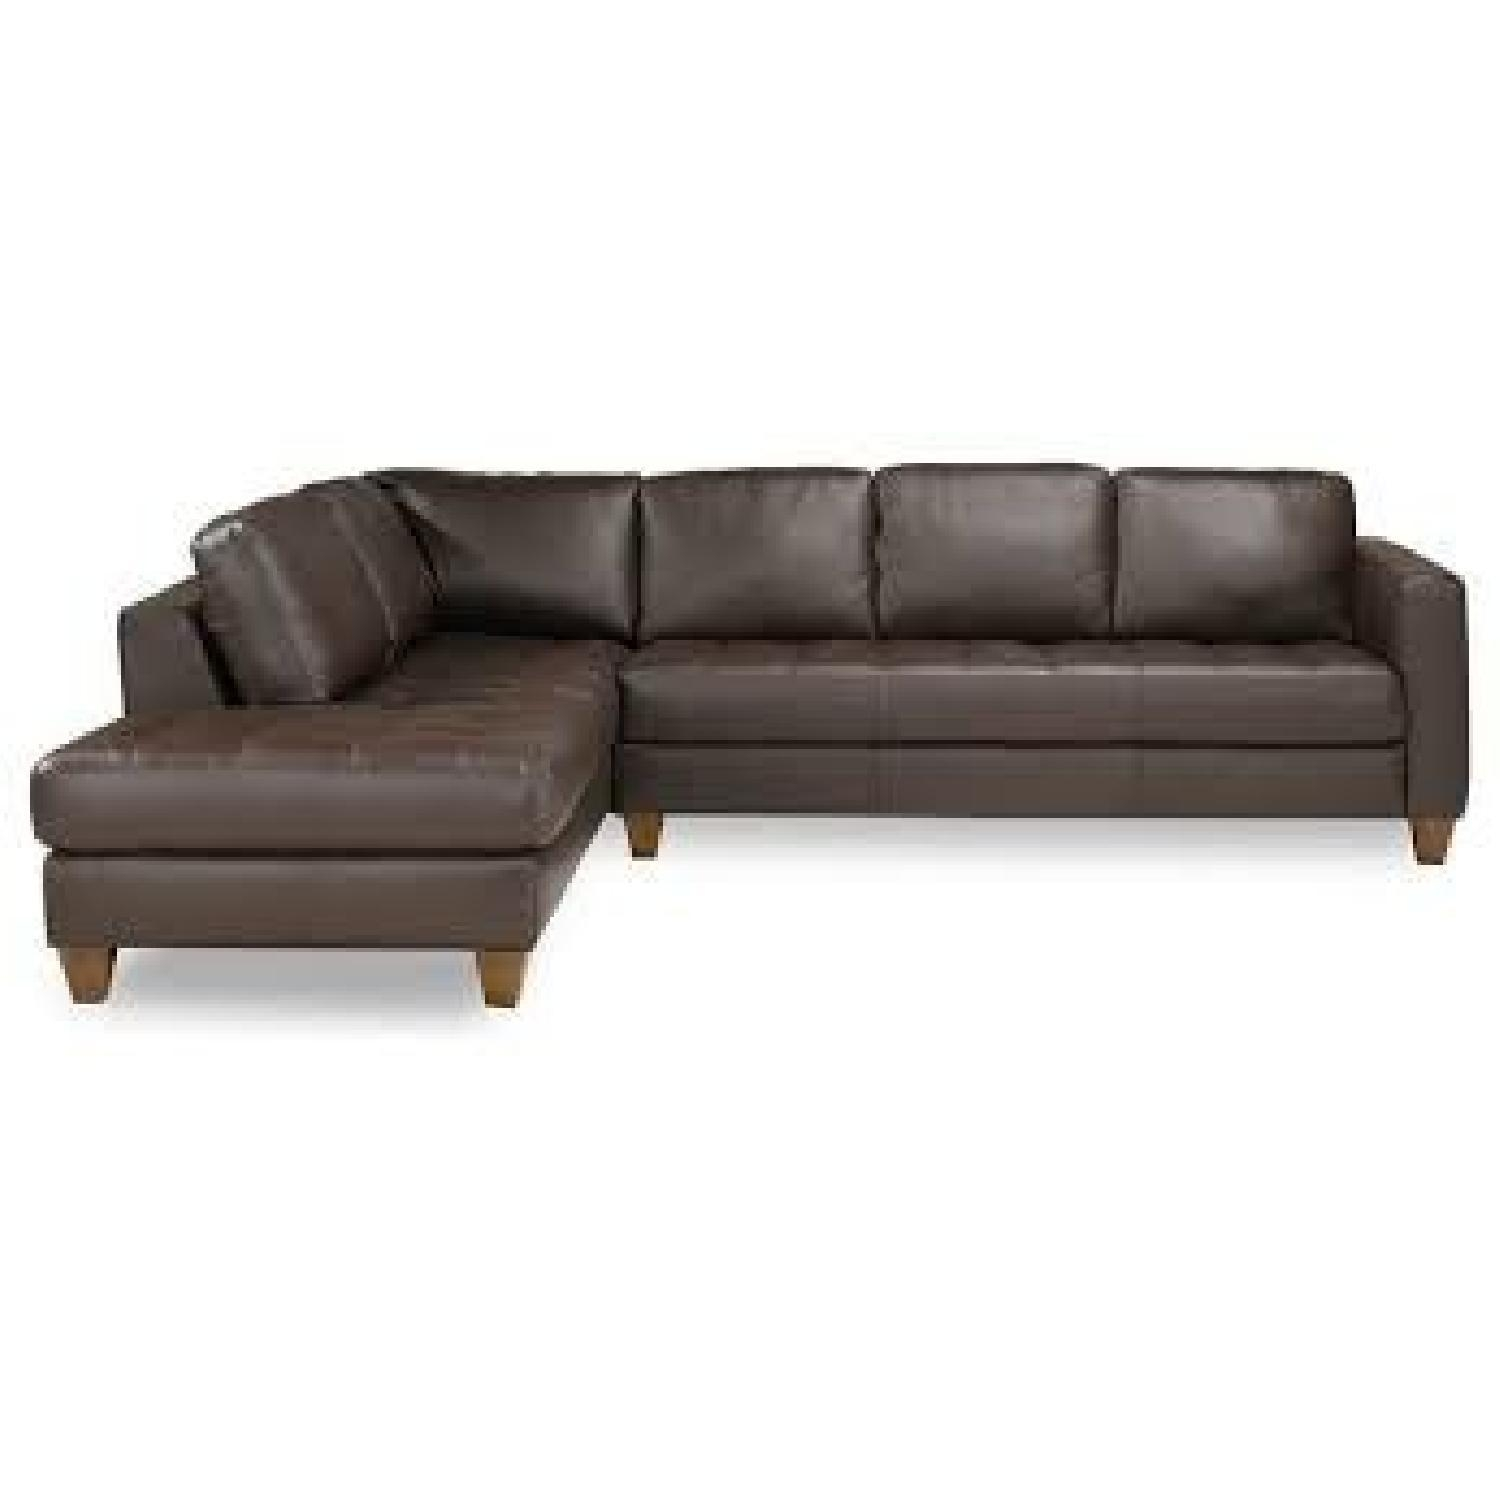 Seats And Sofas Youtube 20 Best Collection Of Macys Sofas Sofa Ideas